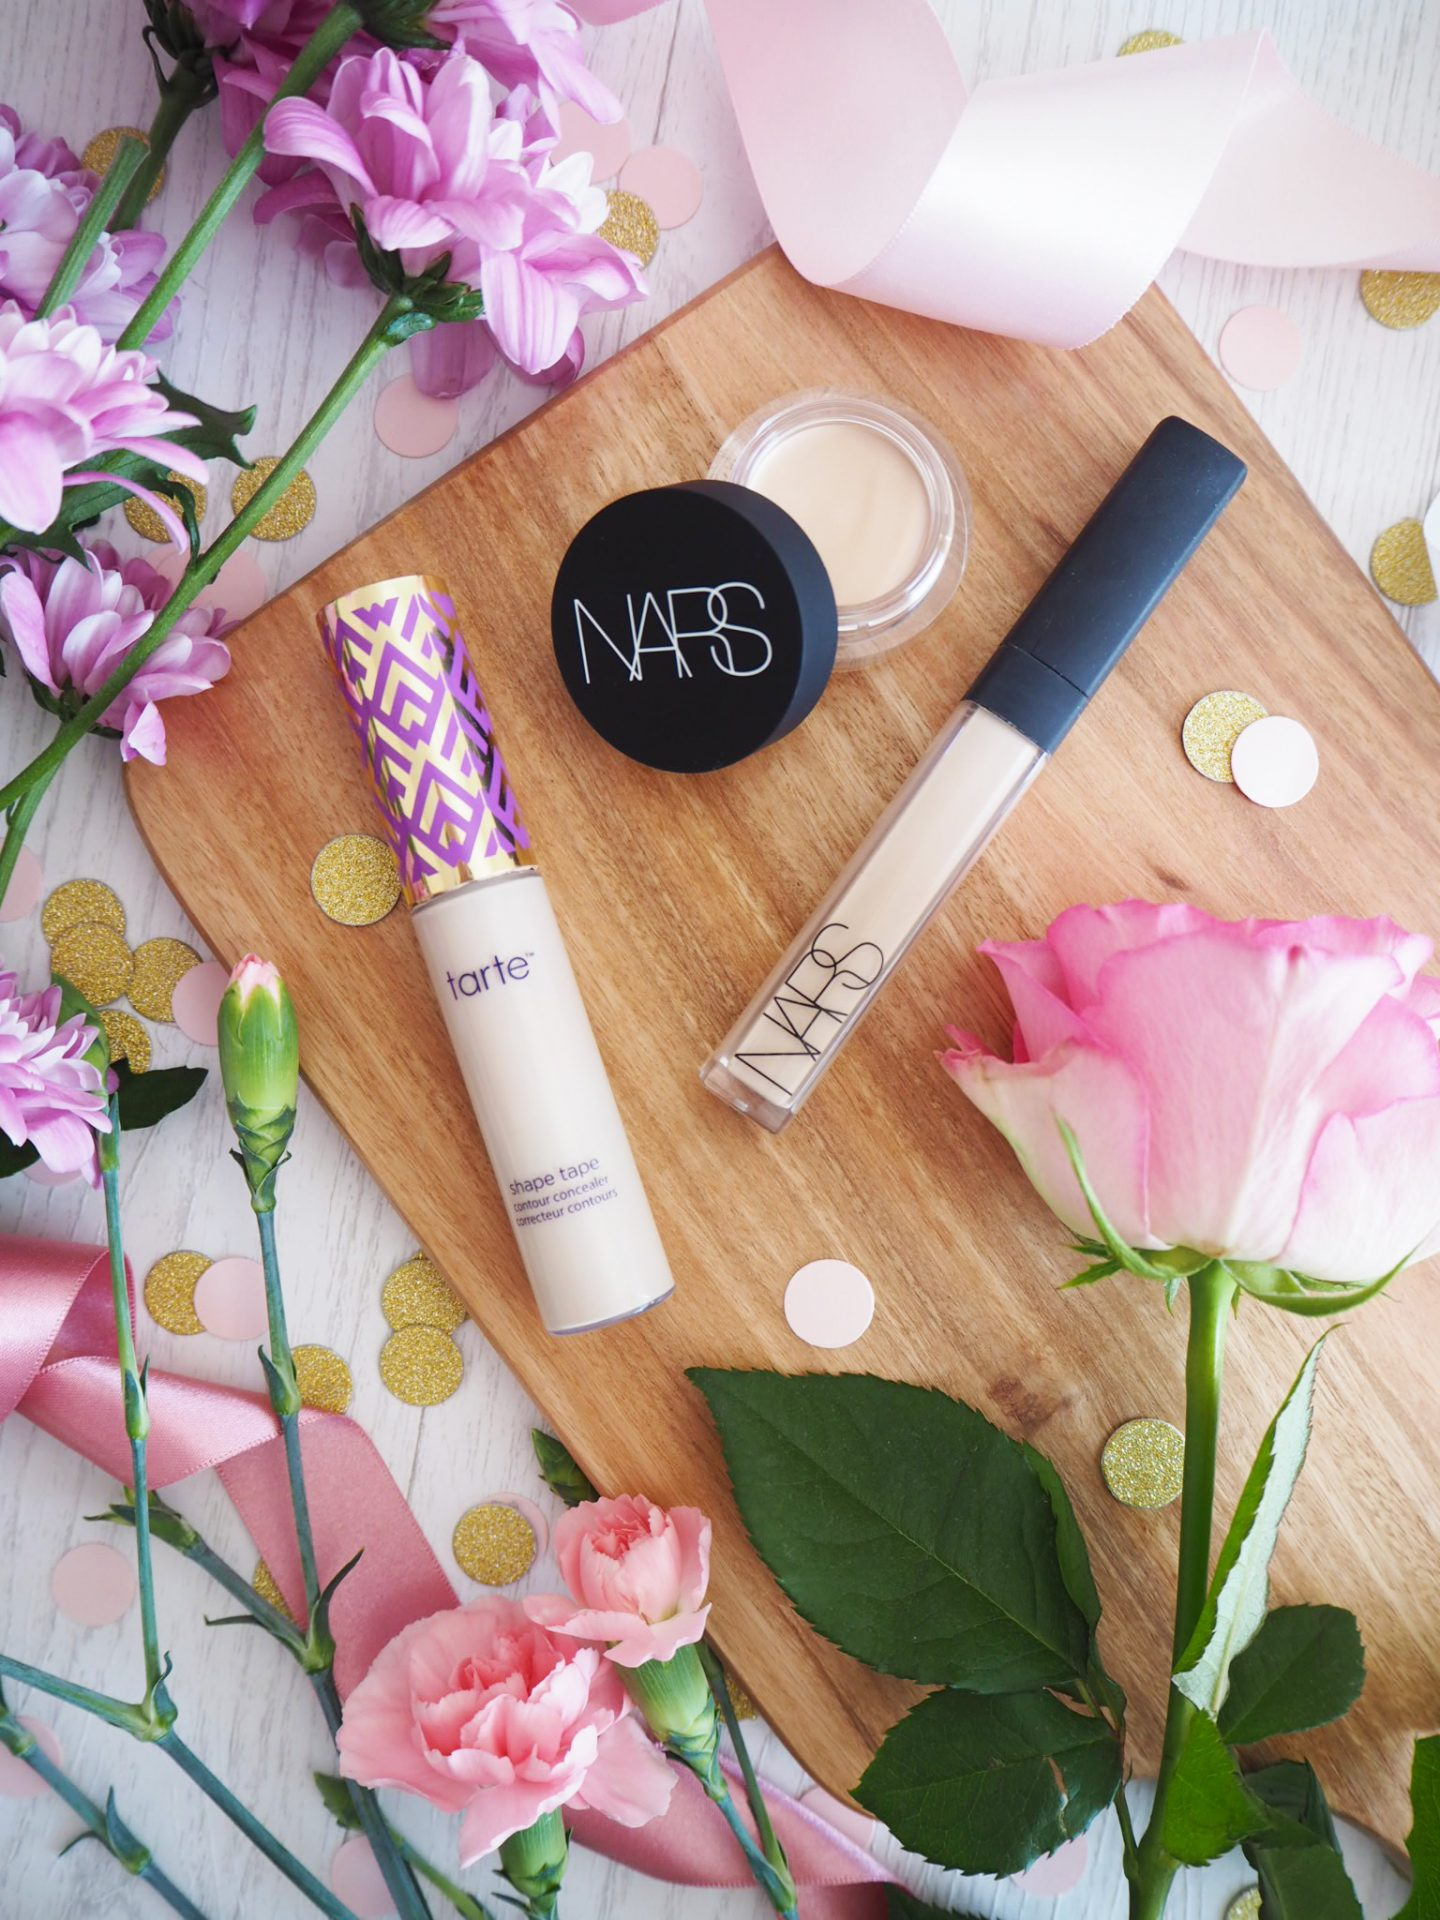 Concealers for Pale Skin Tarte Shape Tape in Fair, Nars Radiant Creamy Concealer in Chantilly, Nars Soft Matte Concealer in Chantilly